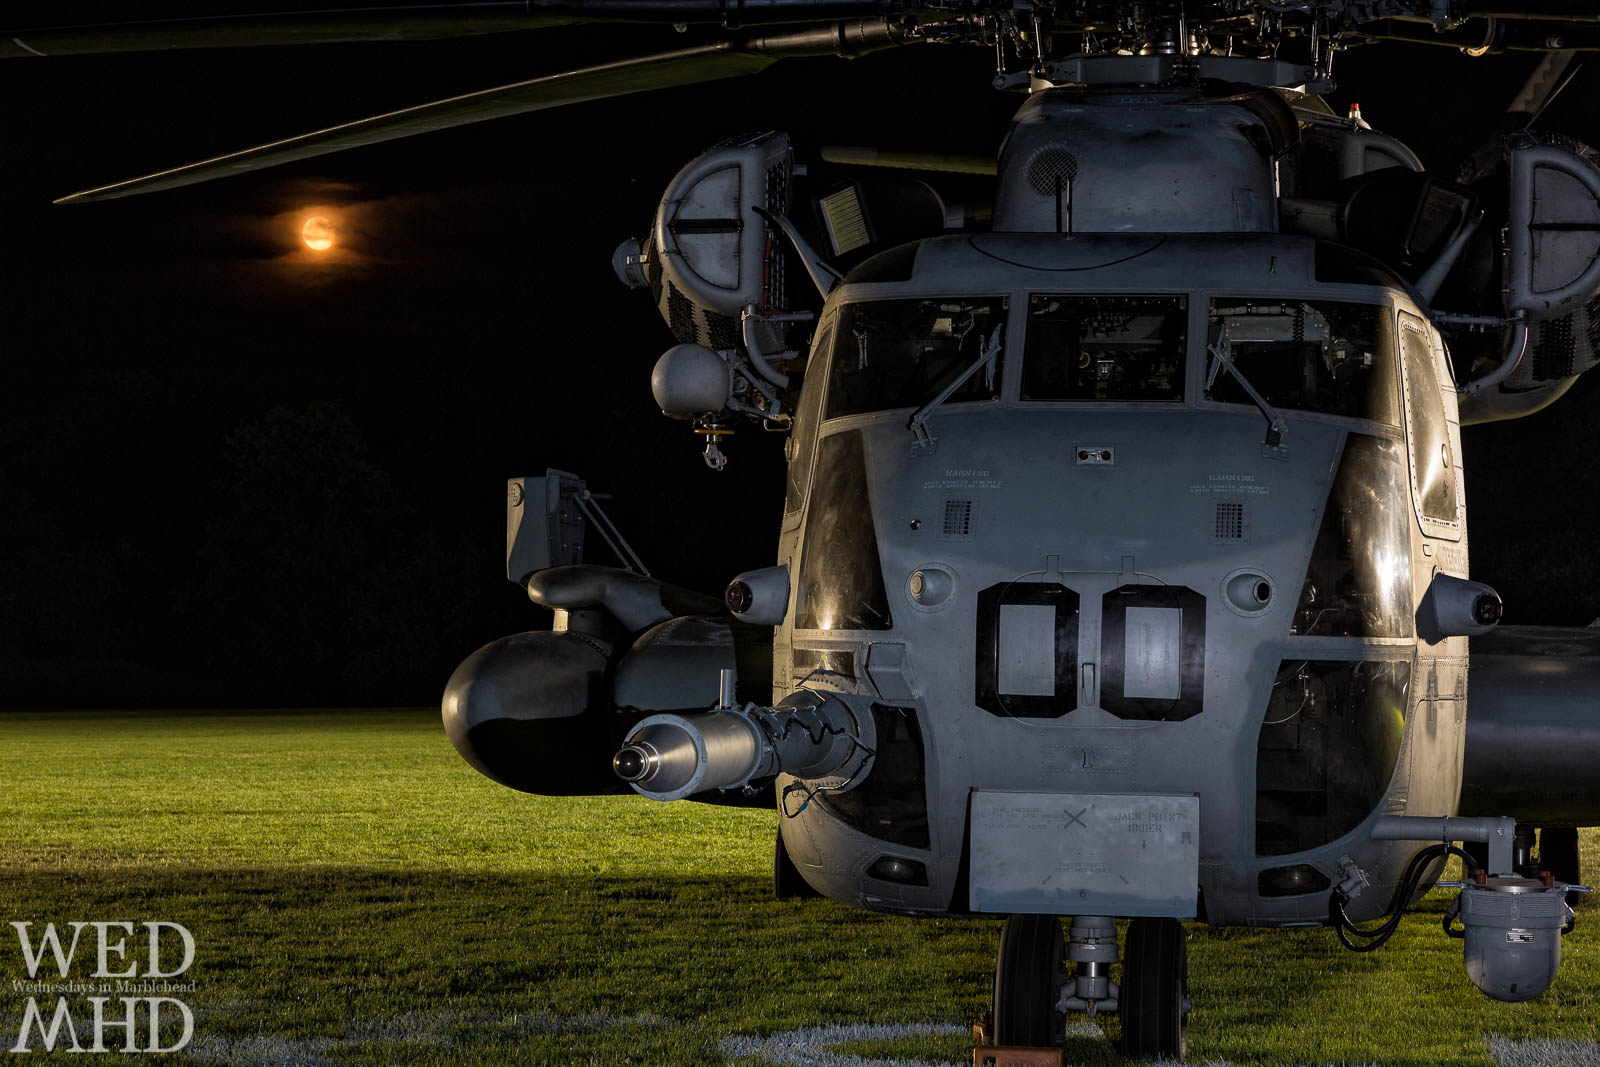 CH-53 and Full Moon